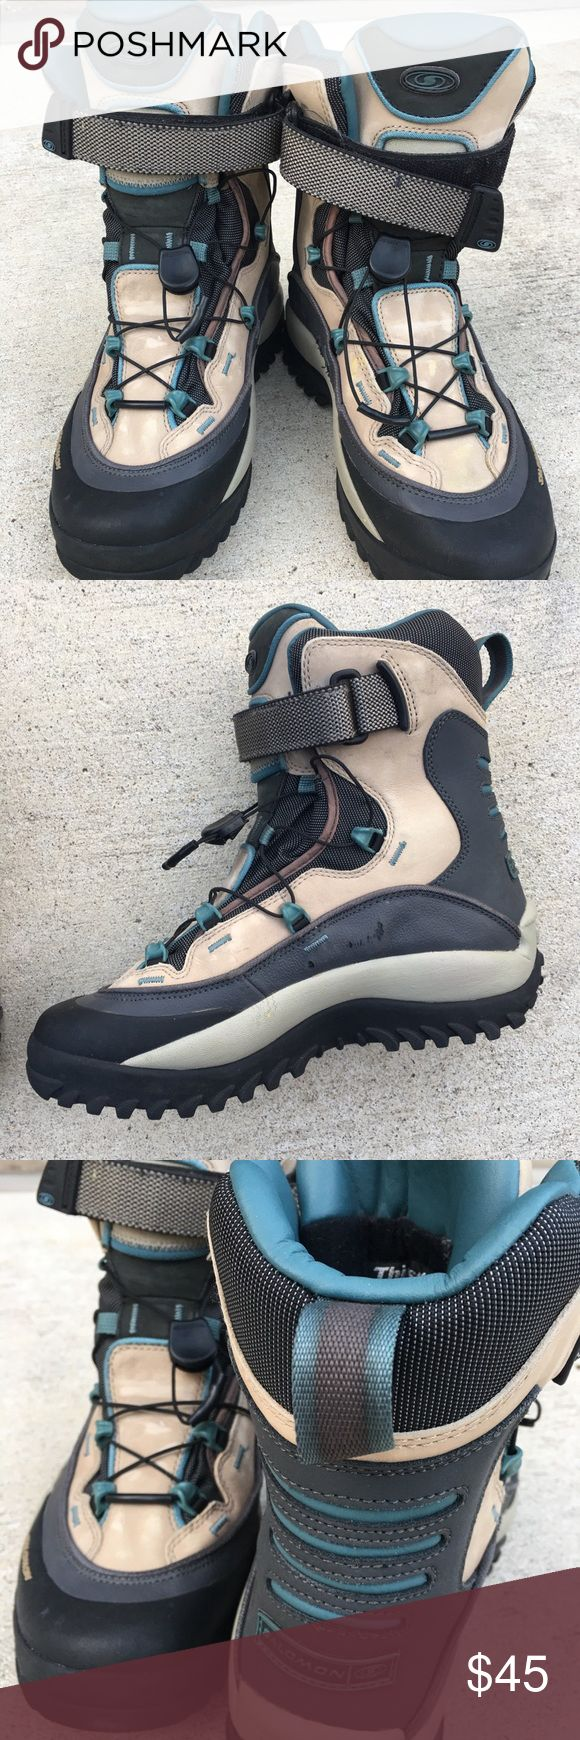 Salomon Winter Hiking Boots Thinsulate Boots are light waterproof and leather.  Thinsulate insulation and aggressive outsoles for confidence when charging through wet, snow and icy conditions. Salomon Shoes Winter & Rain Boots